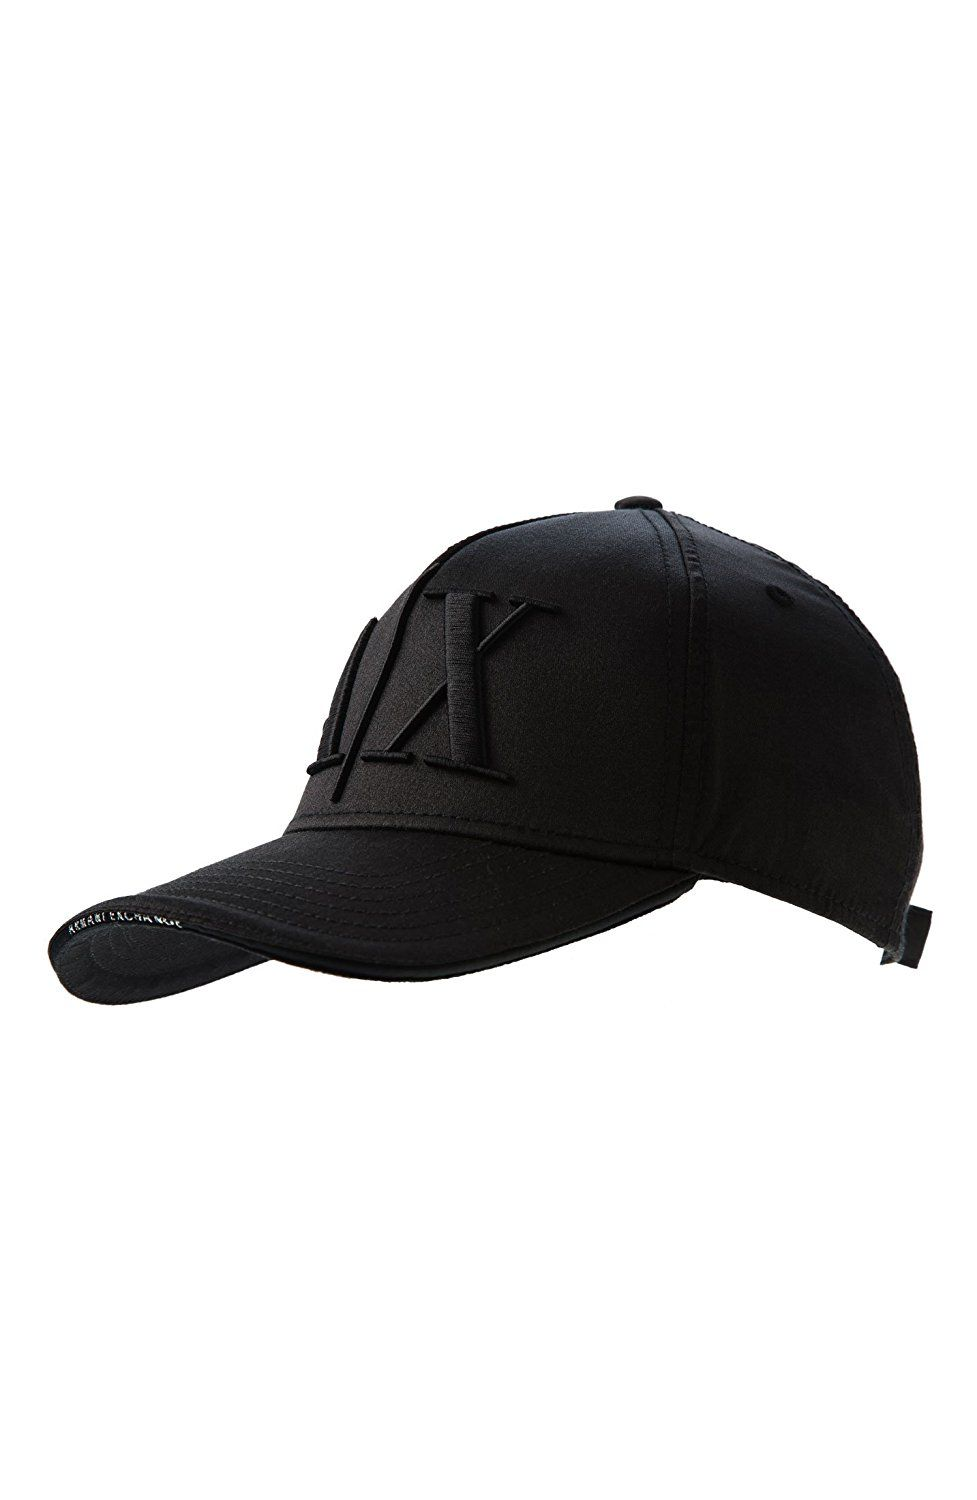 bfbdd48effa Armani Exchange Mens Sateen Logo Baseball Hat